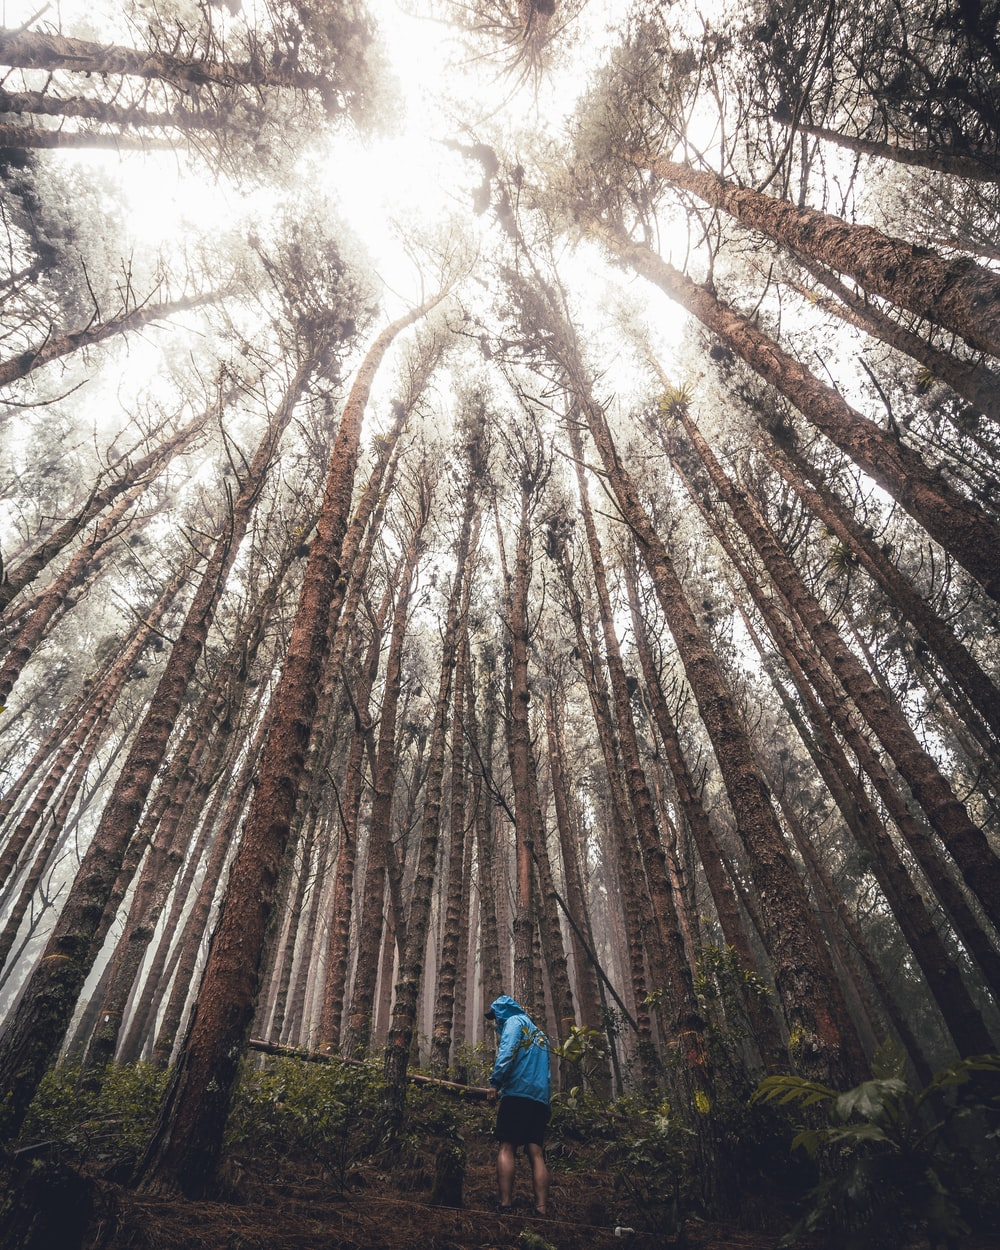 man under tall trees in forest during daytime